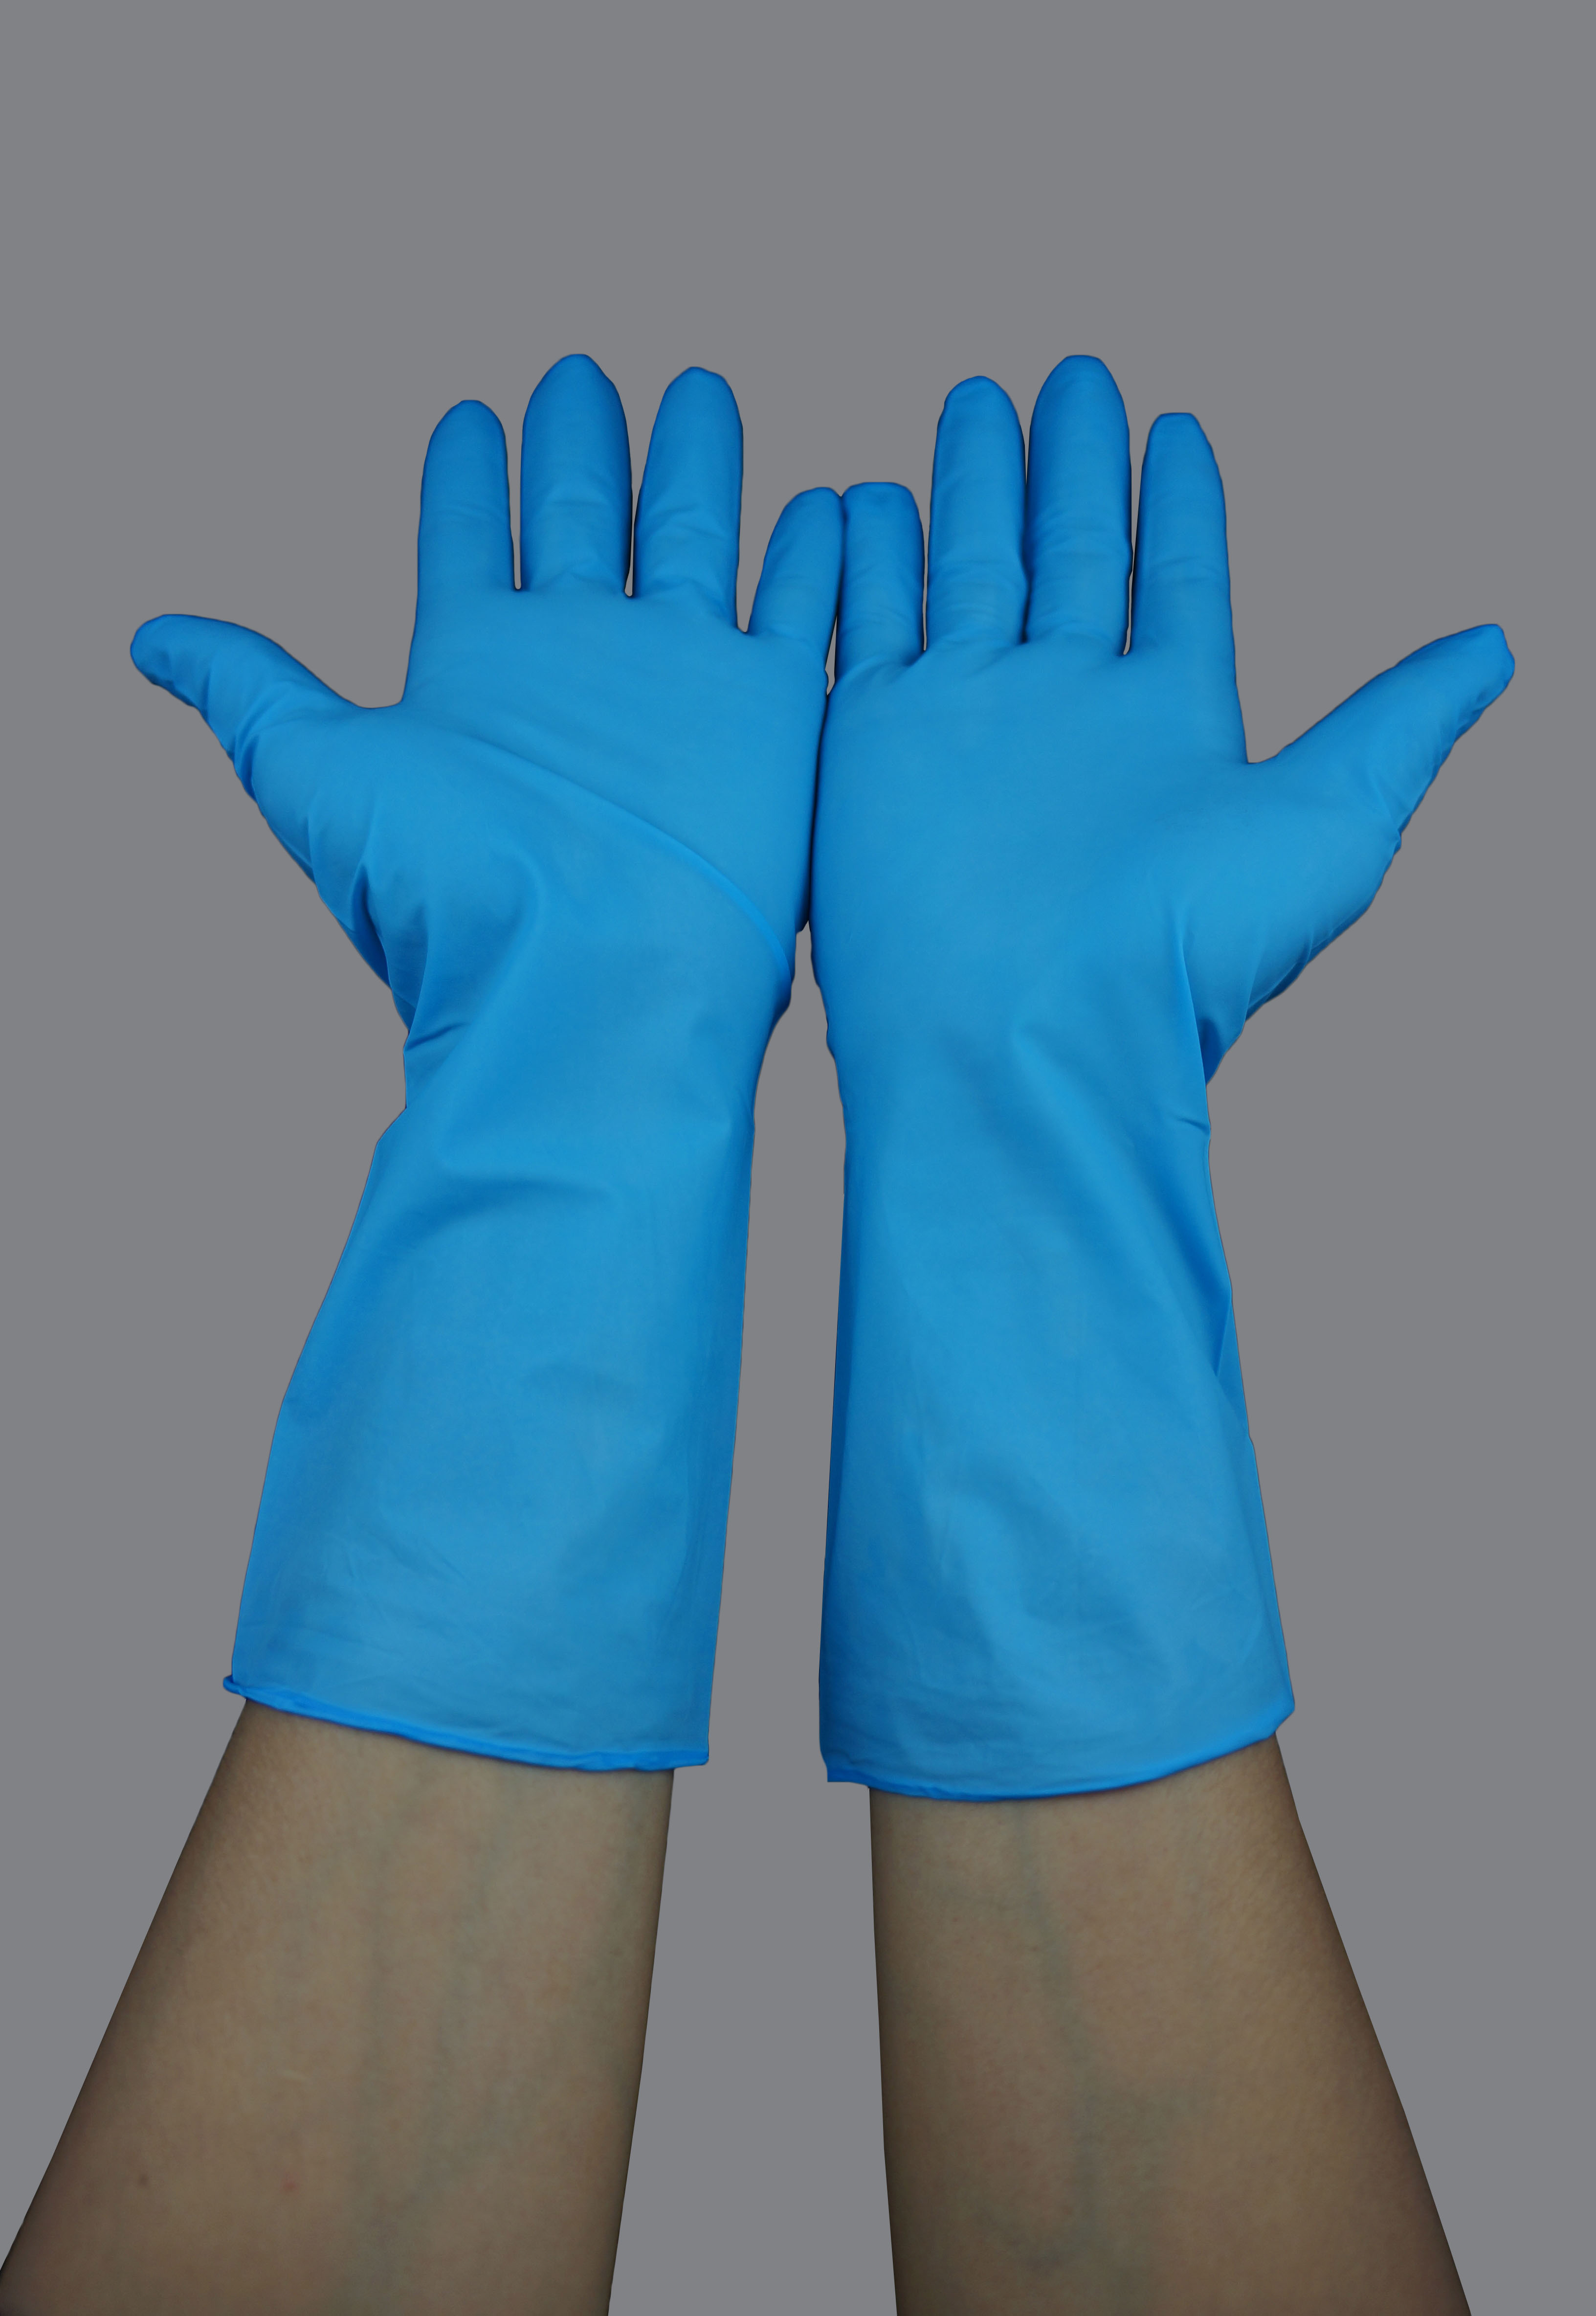 Powder Free Cleanroom Nitrile Gloves Cleanroom Gloves